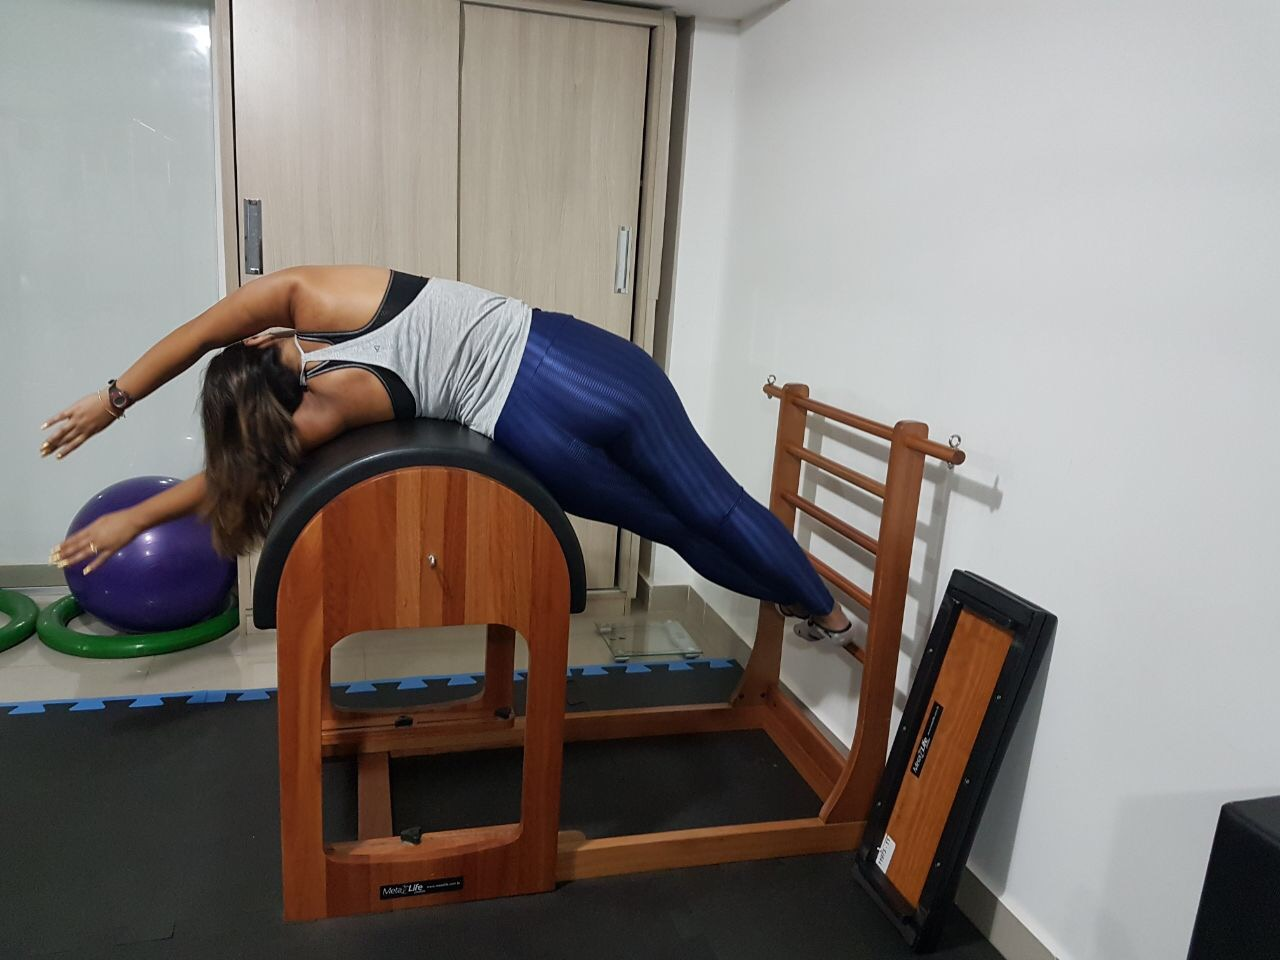 Os 6 princípios do Método Pilates